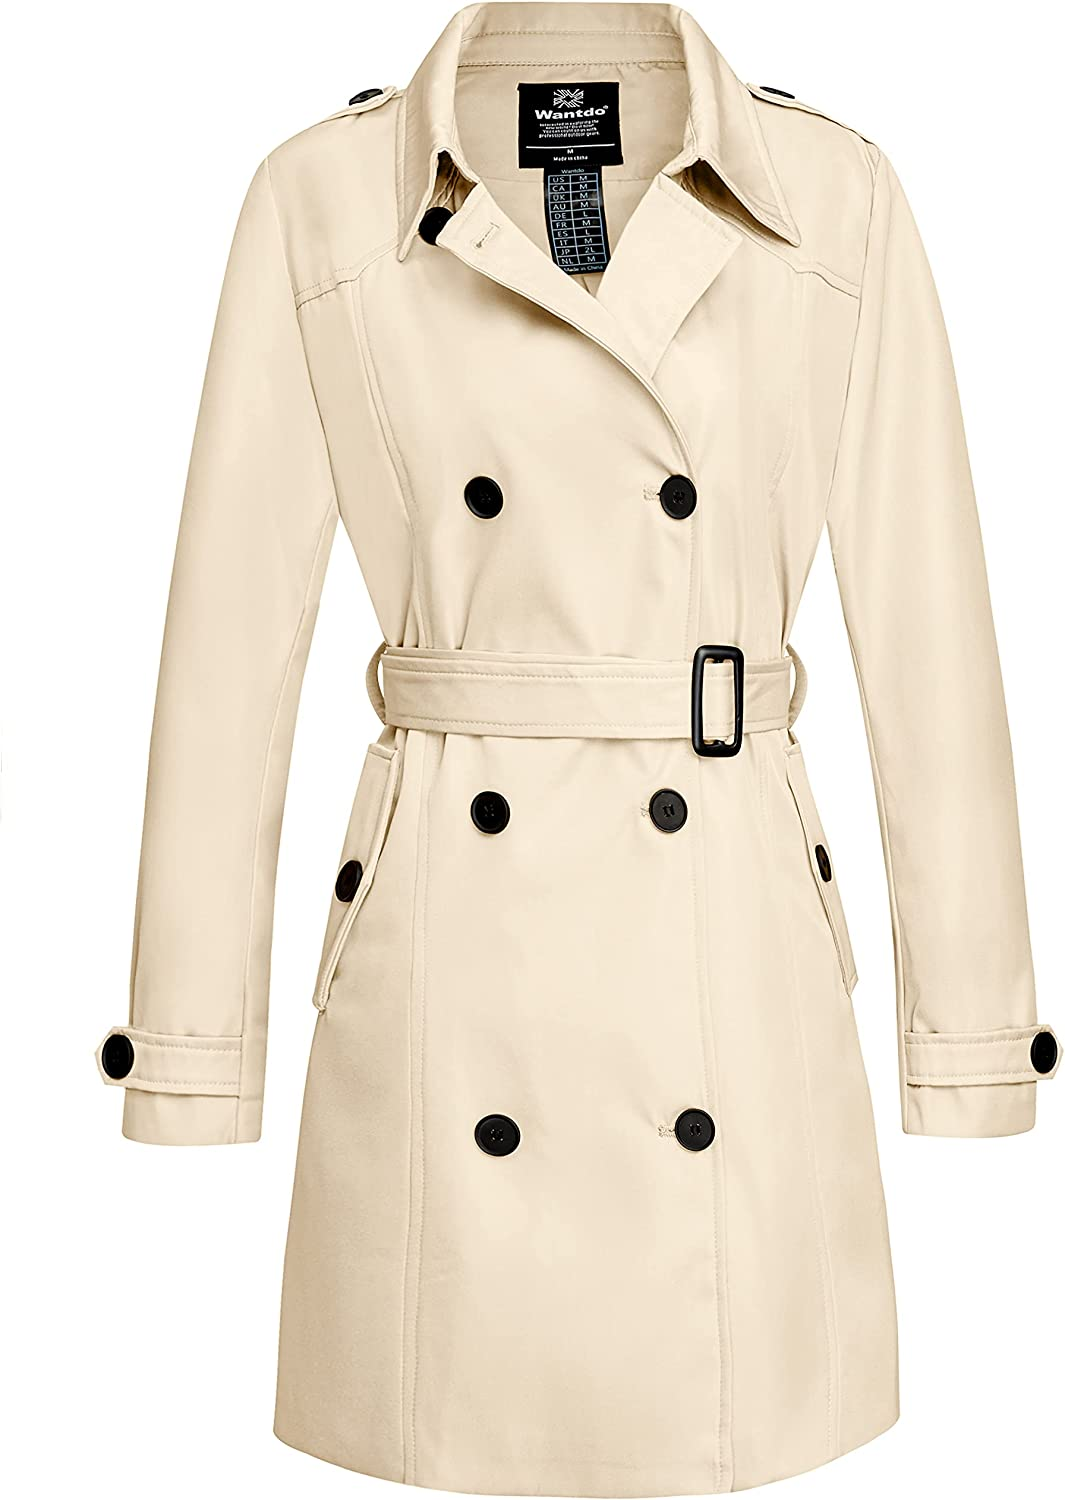 Wantdo Women's Waterproof Opening large release sale Double-Breasted Classic Opening large release sale Coat Trench La